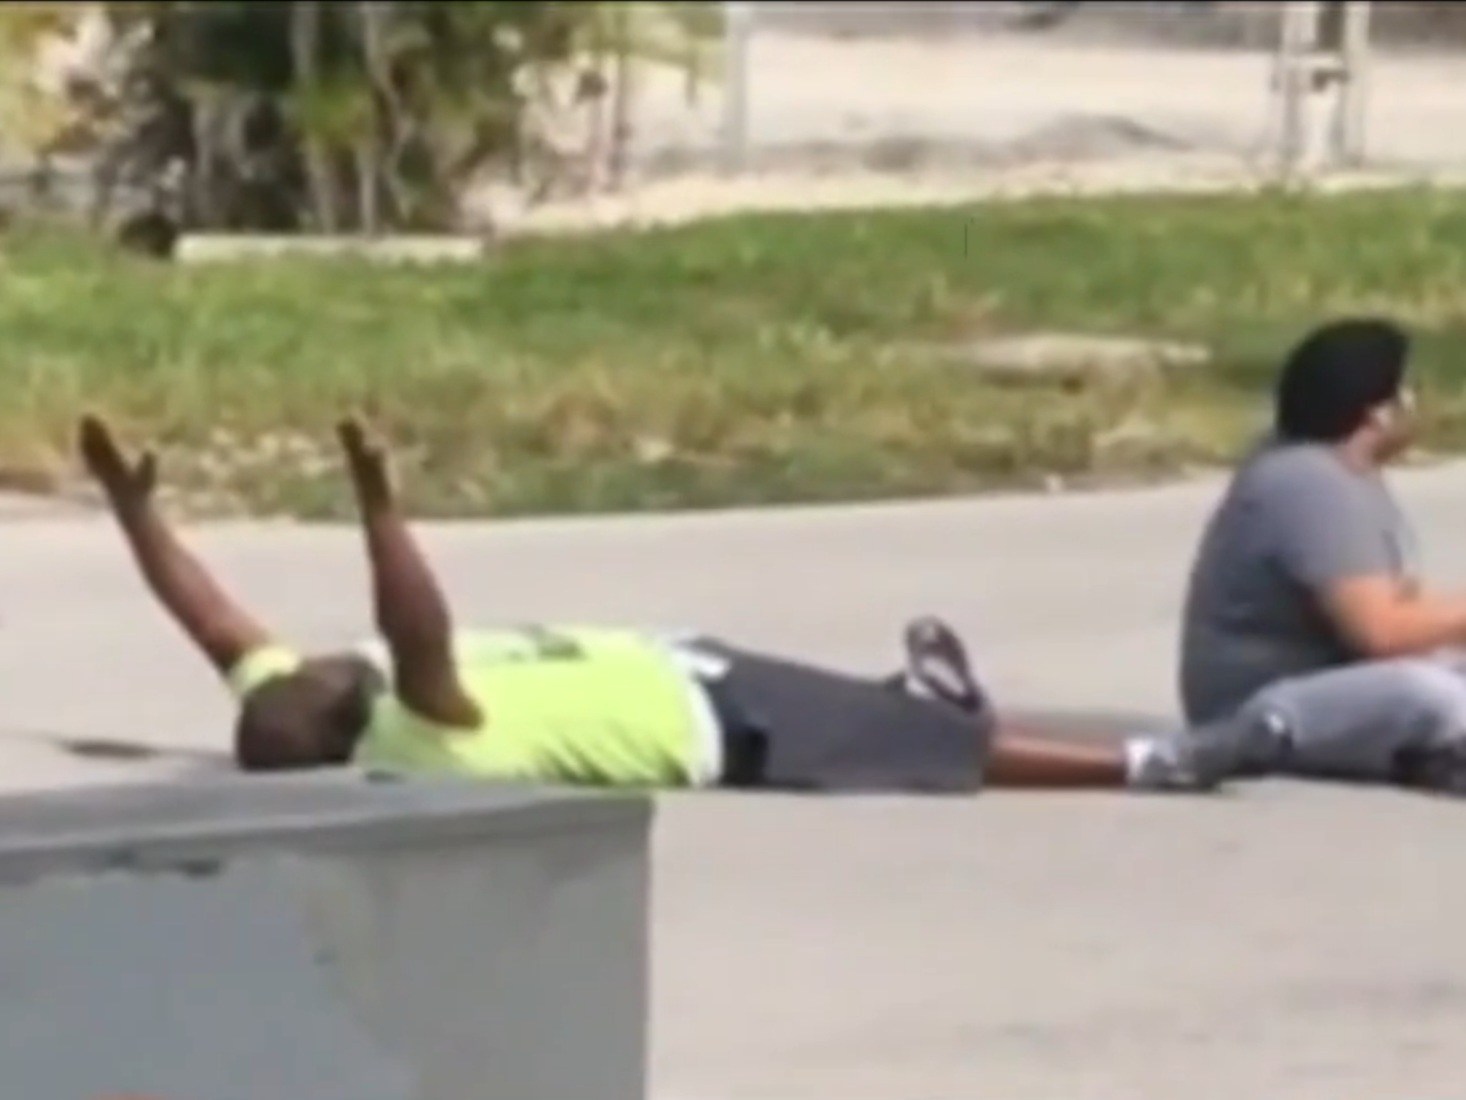 In a video filmed on Monday, Charles Kinsey (left) lies next to the autistic patient he was trying to help, holding his hands up in an effort to assure the North Miami police that they aren't a threat. Kinsey was later shot in the leg by the police. (Photo by Channel 7 WSVN/Screenshot by NPR)